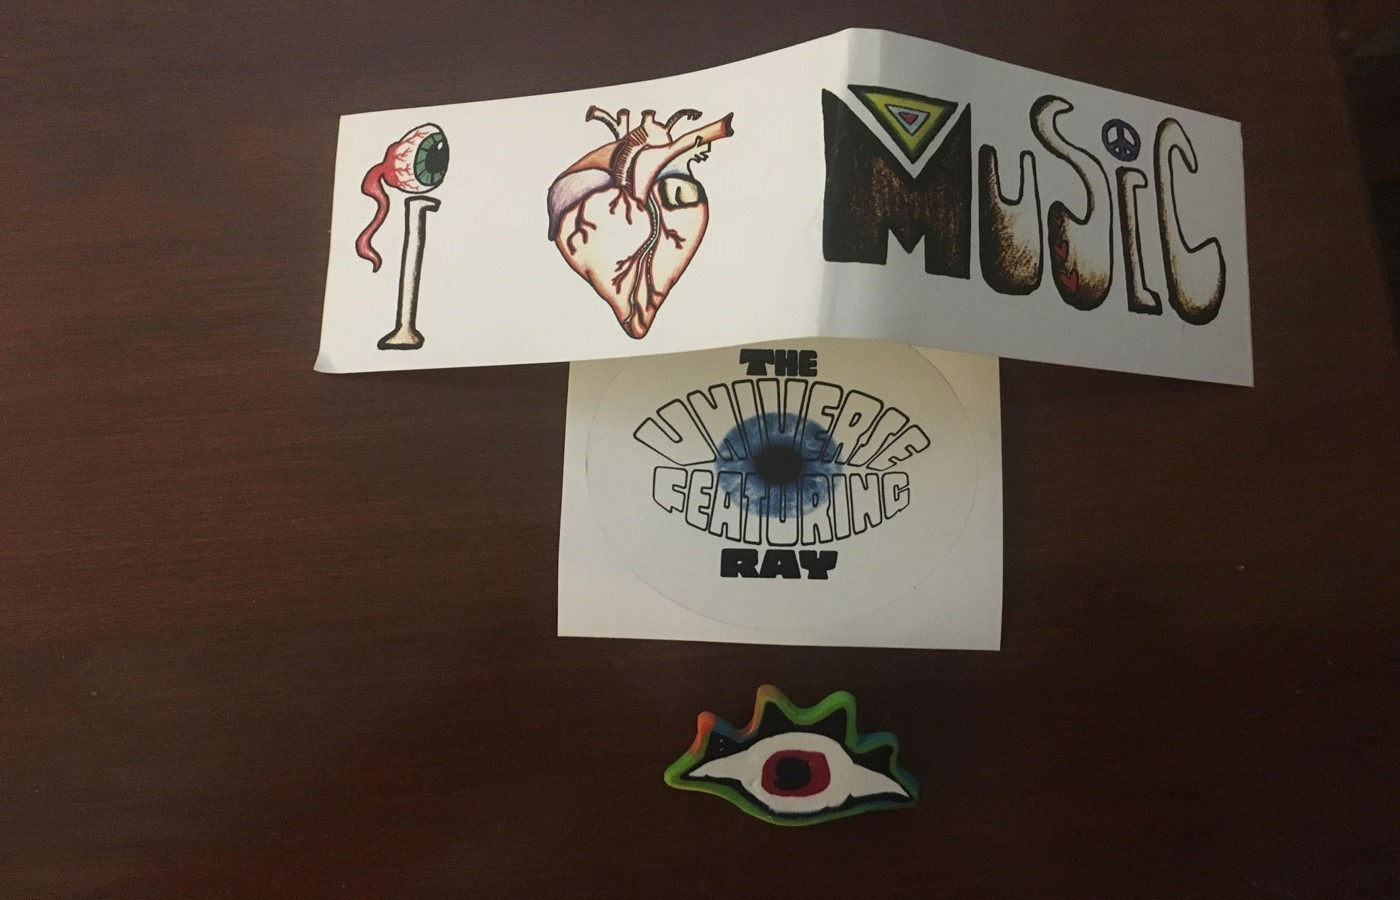 "A sticker that says ""I love music,,"" a sticker that says ""The Universe Featuring Ray"" and an eye pin on a wooden table. All are created by The Universe Featuring Ray"